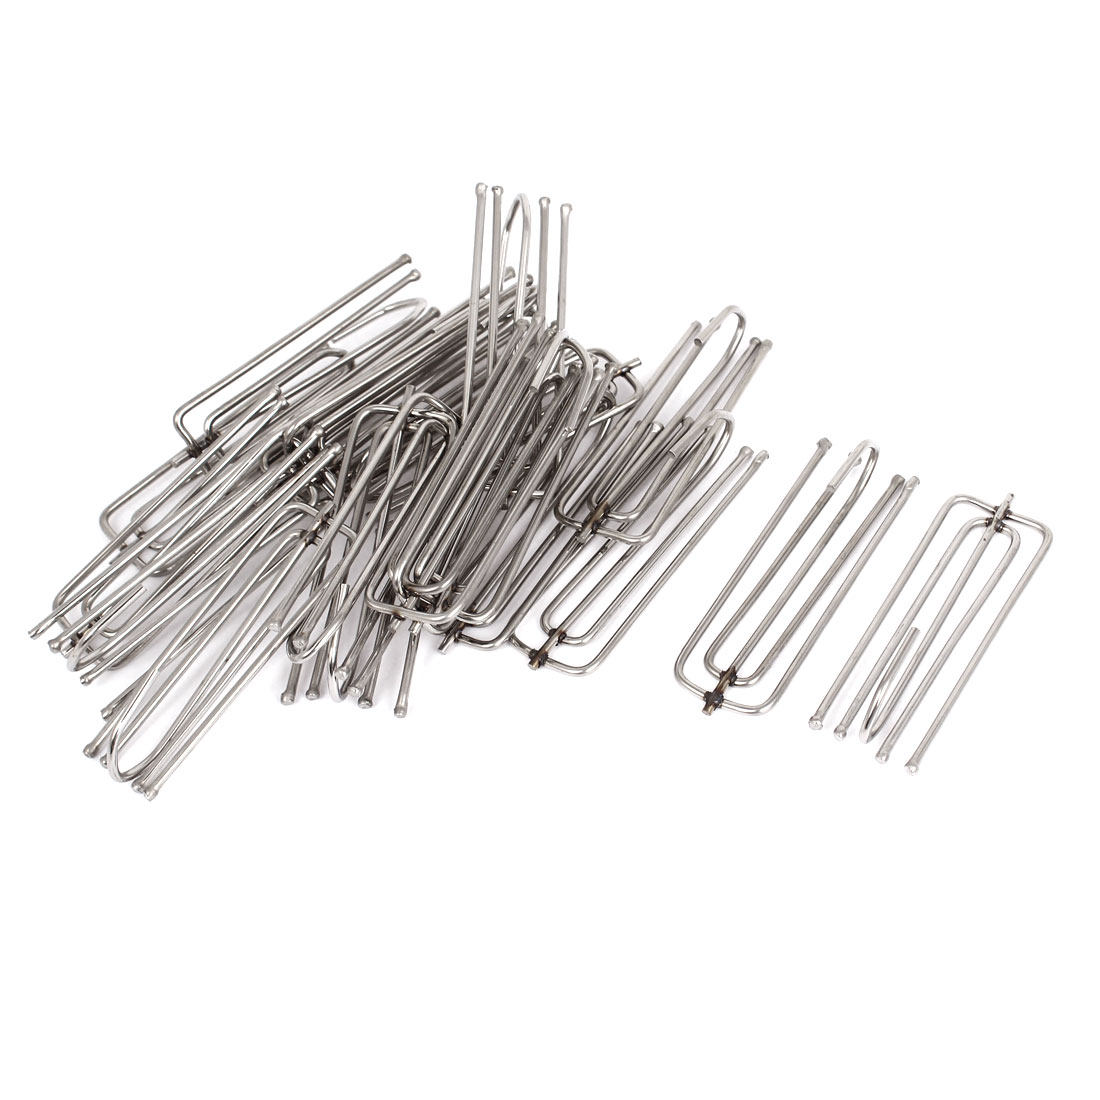 Unique Bargains Window  Stainless Steel Drapes Curtain Pleat Hooks 7cm Long 20 Pcs